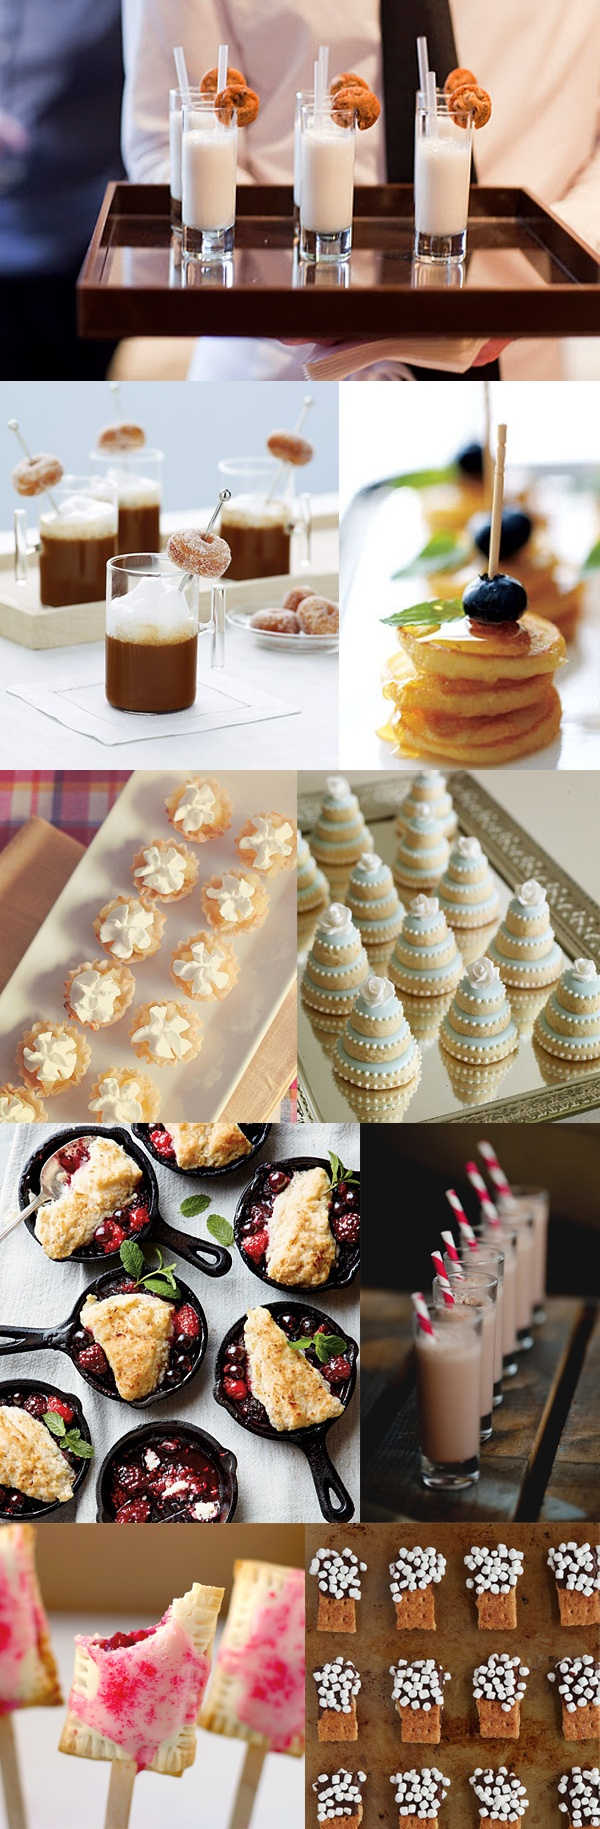 sweet summer wedding appetizers    donuts, mini pancakes on skewers and baked pops are great for a brunch wedding